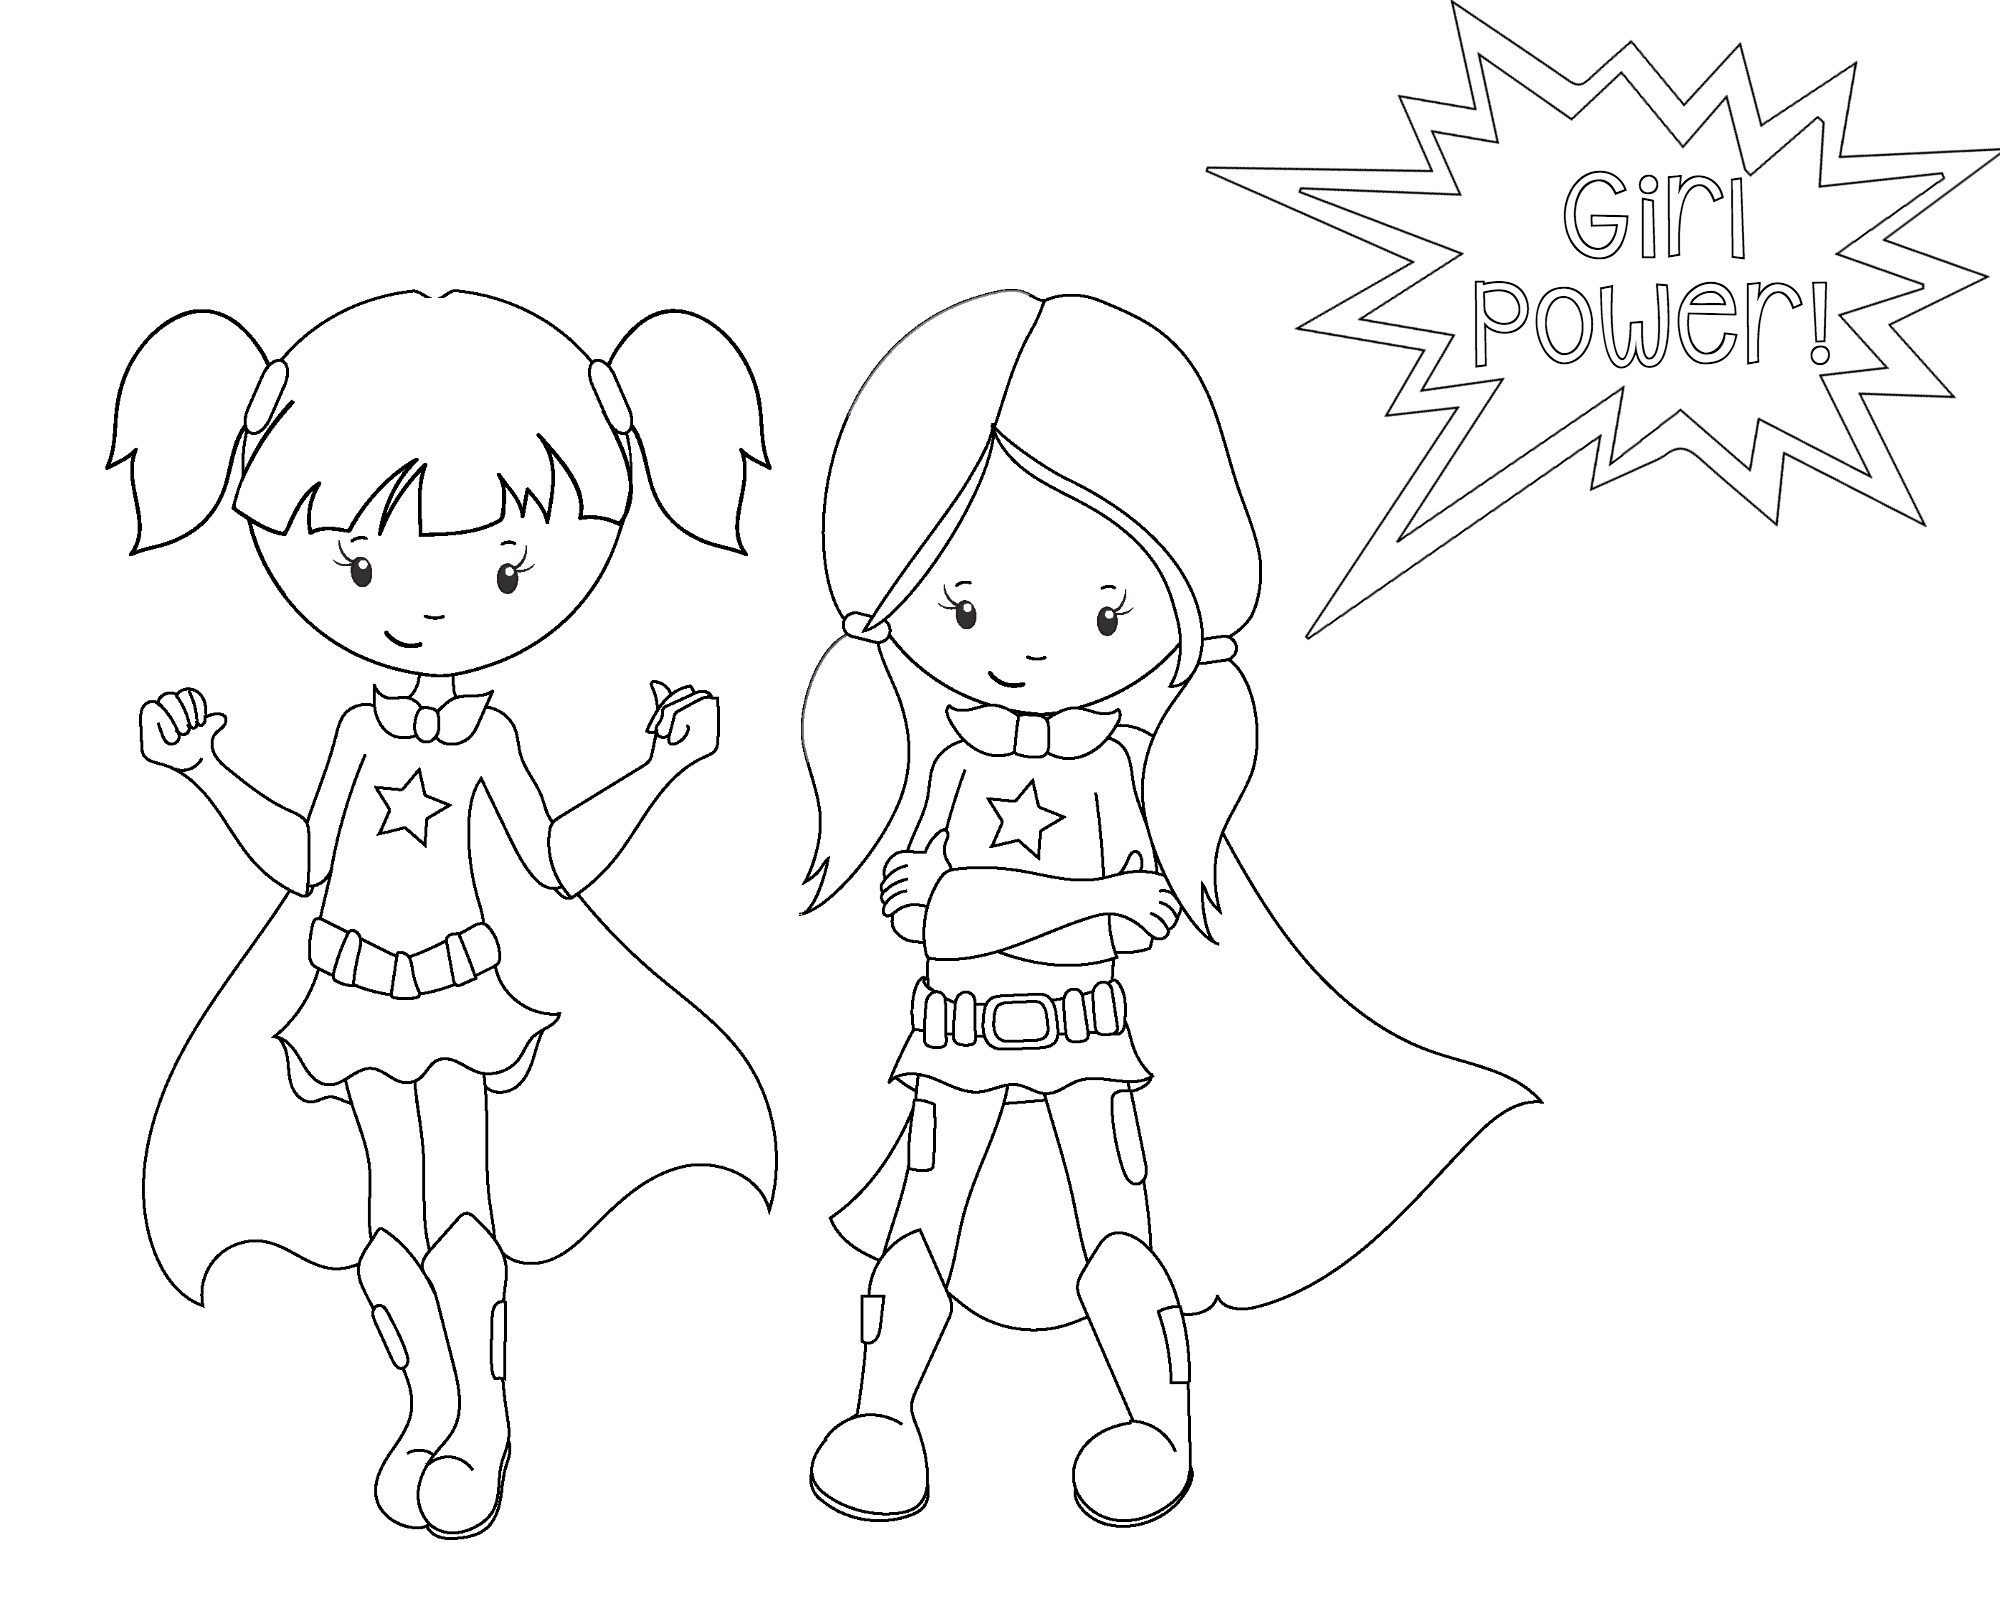 Superhero coloring pages for girls